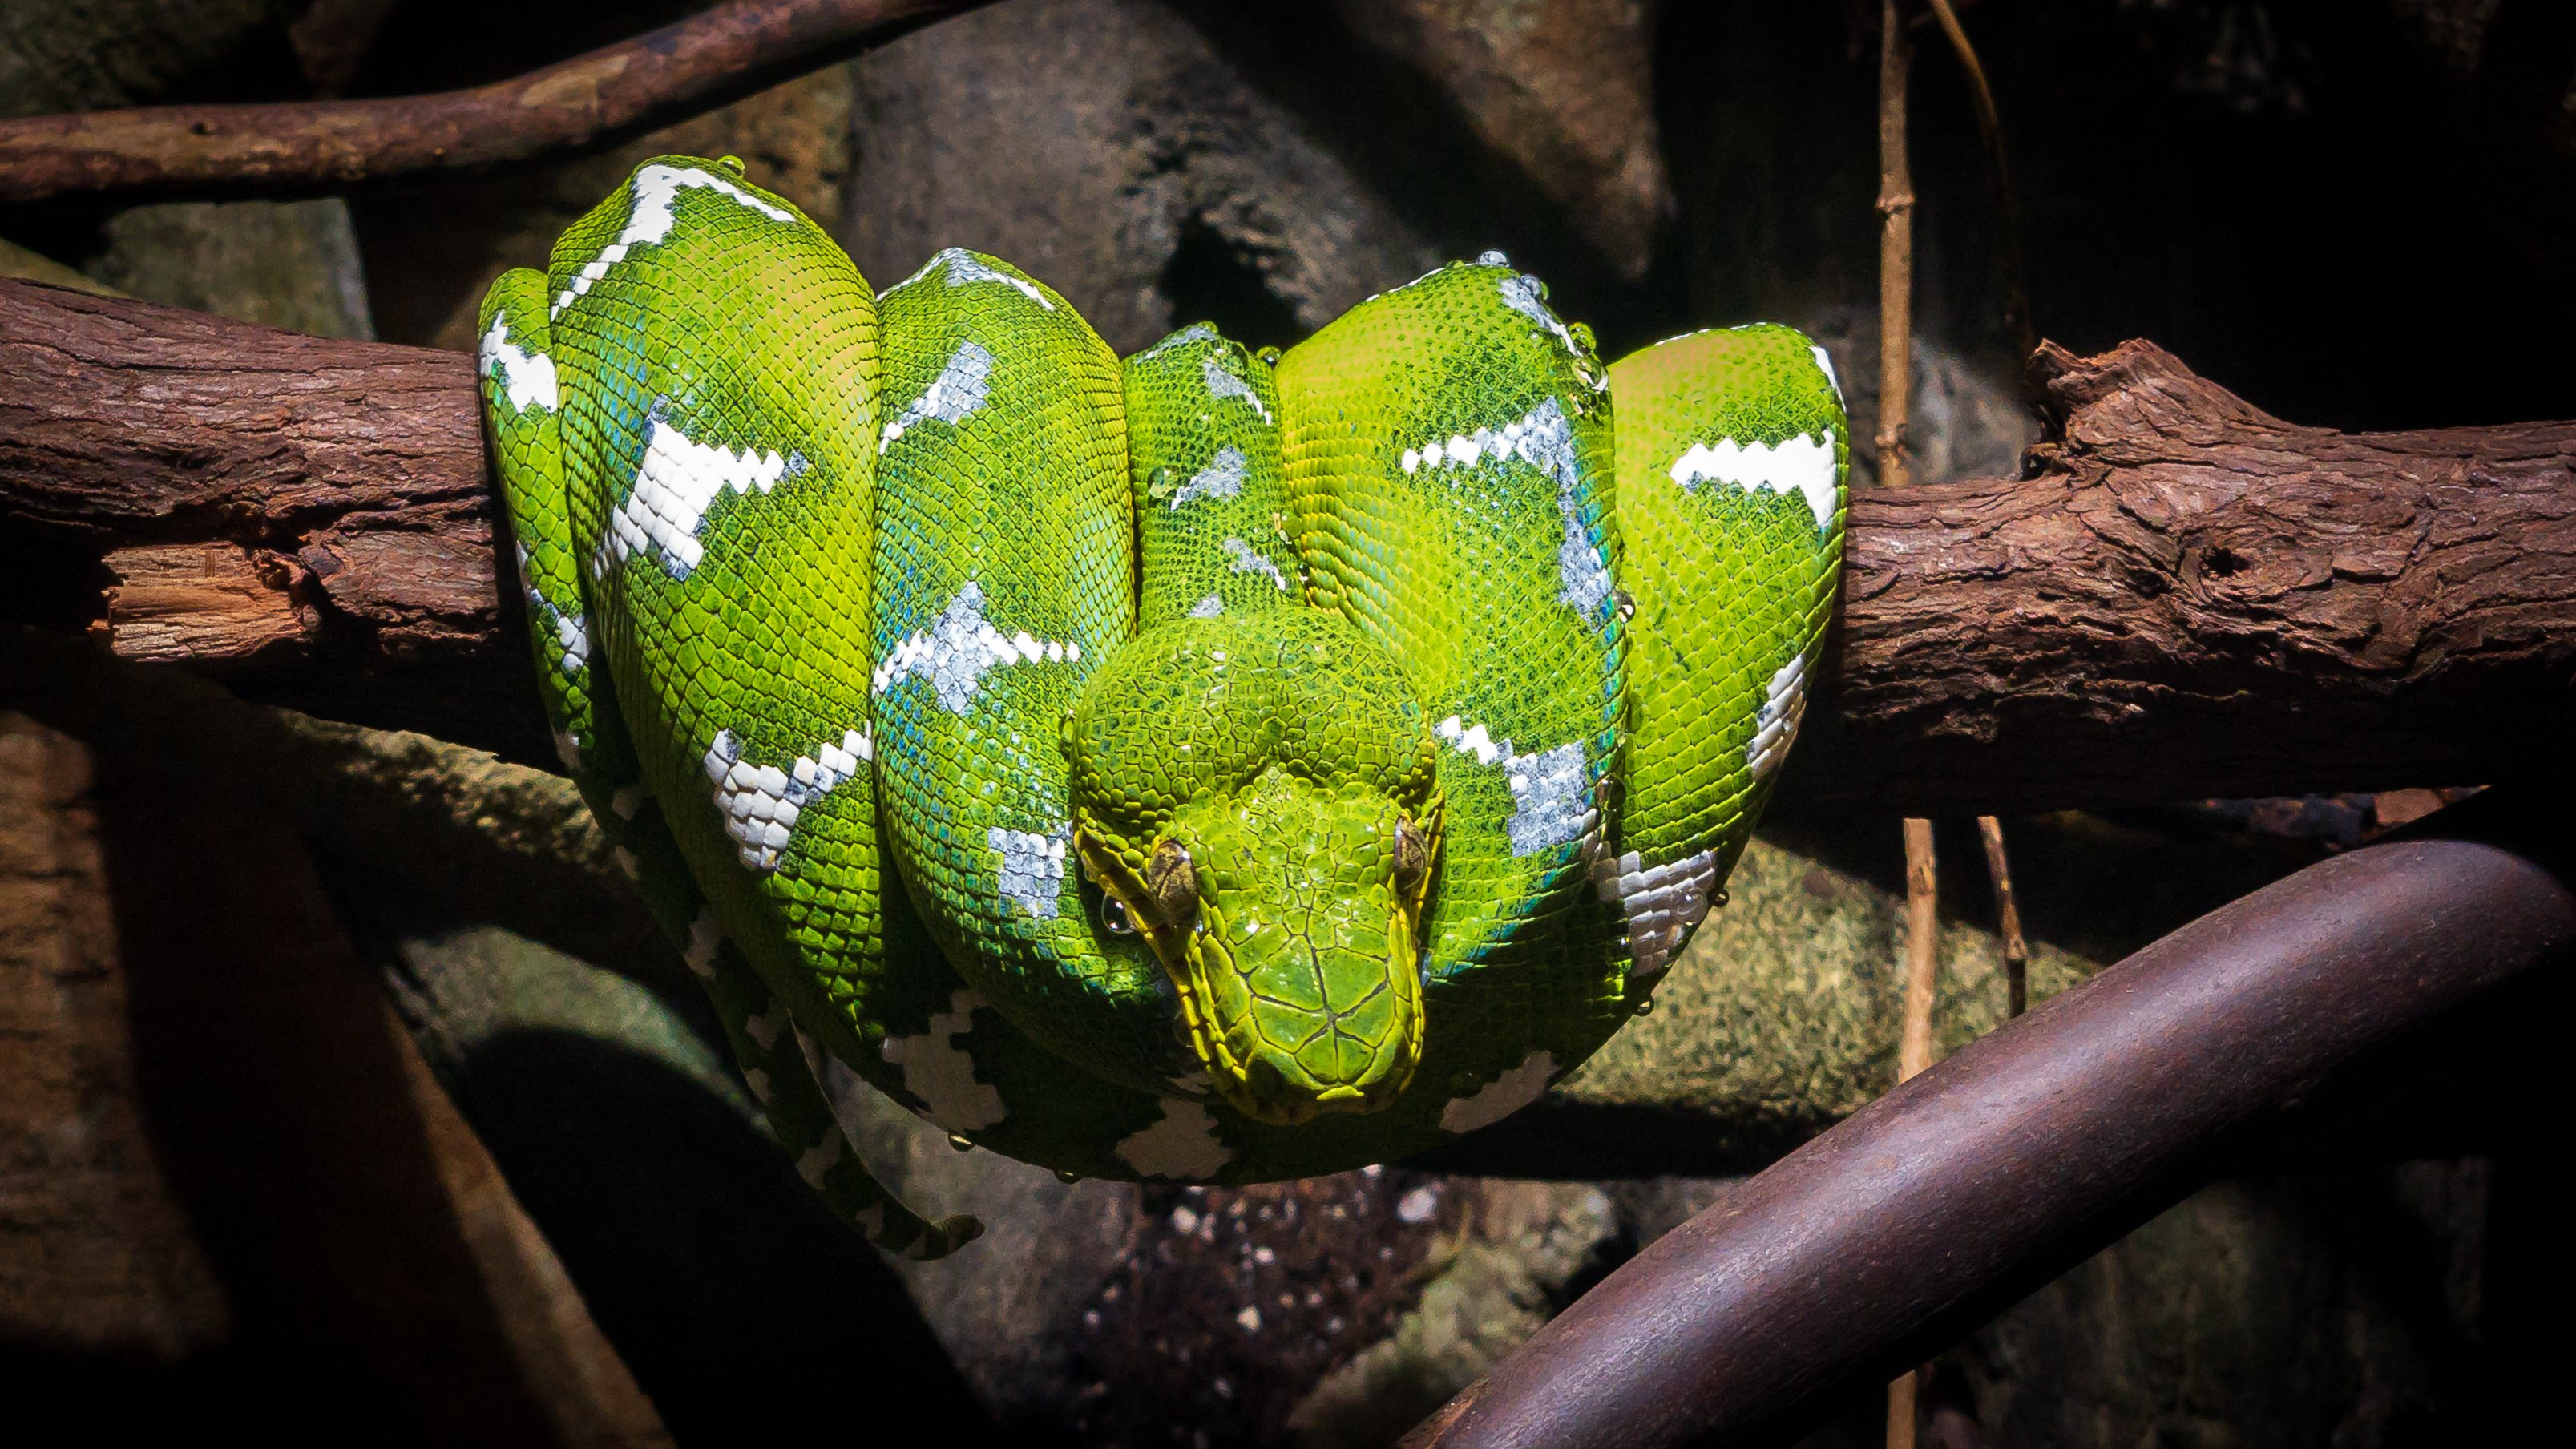 Vancouver Aquarium with the iPhone X : 2018-09-09 : Emerald Tree Boa